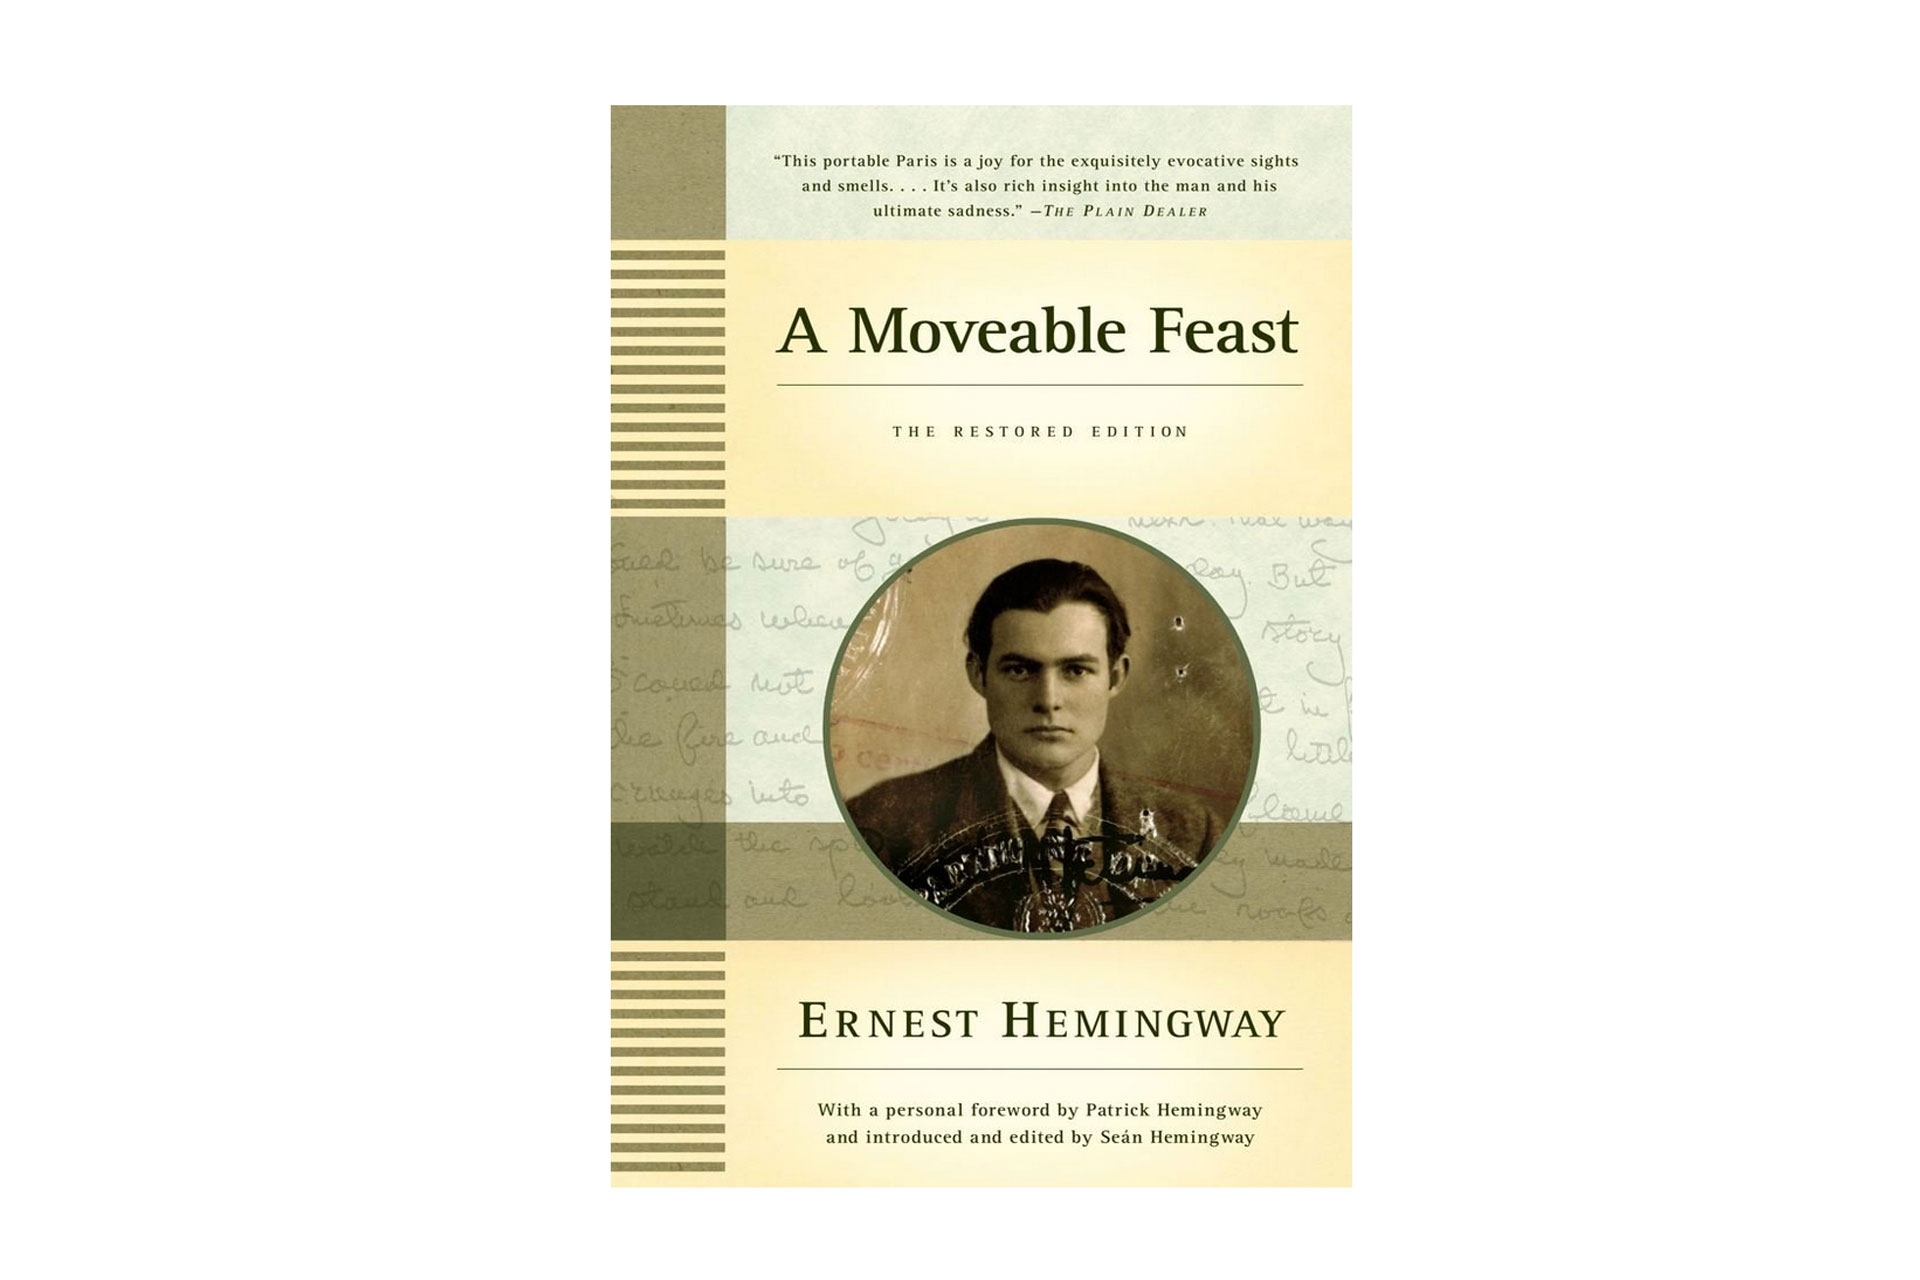 A Moveable Feast Book; Courtesy of Amazon